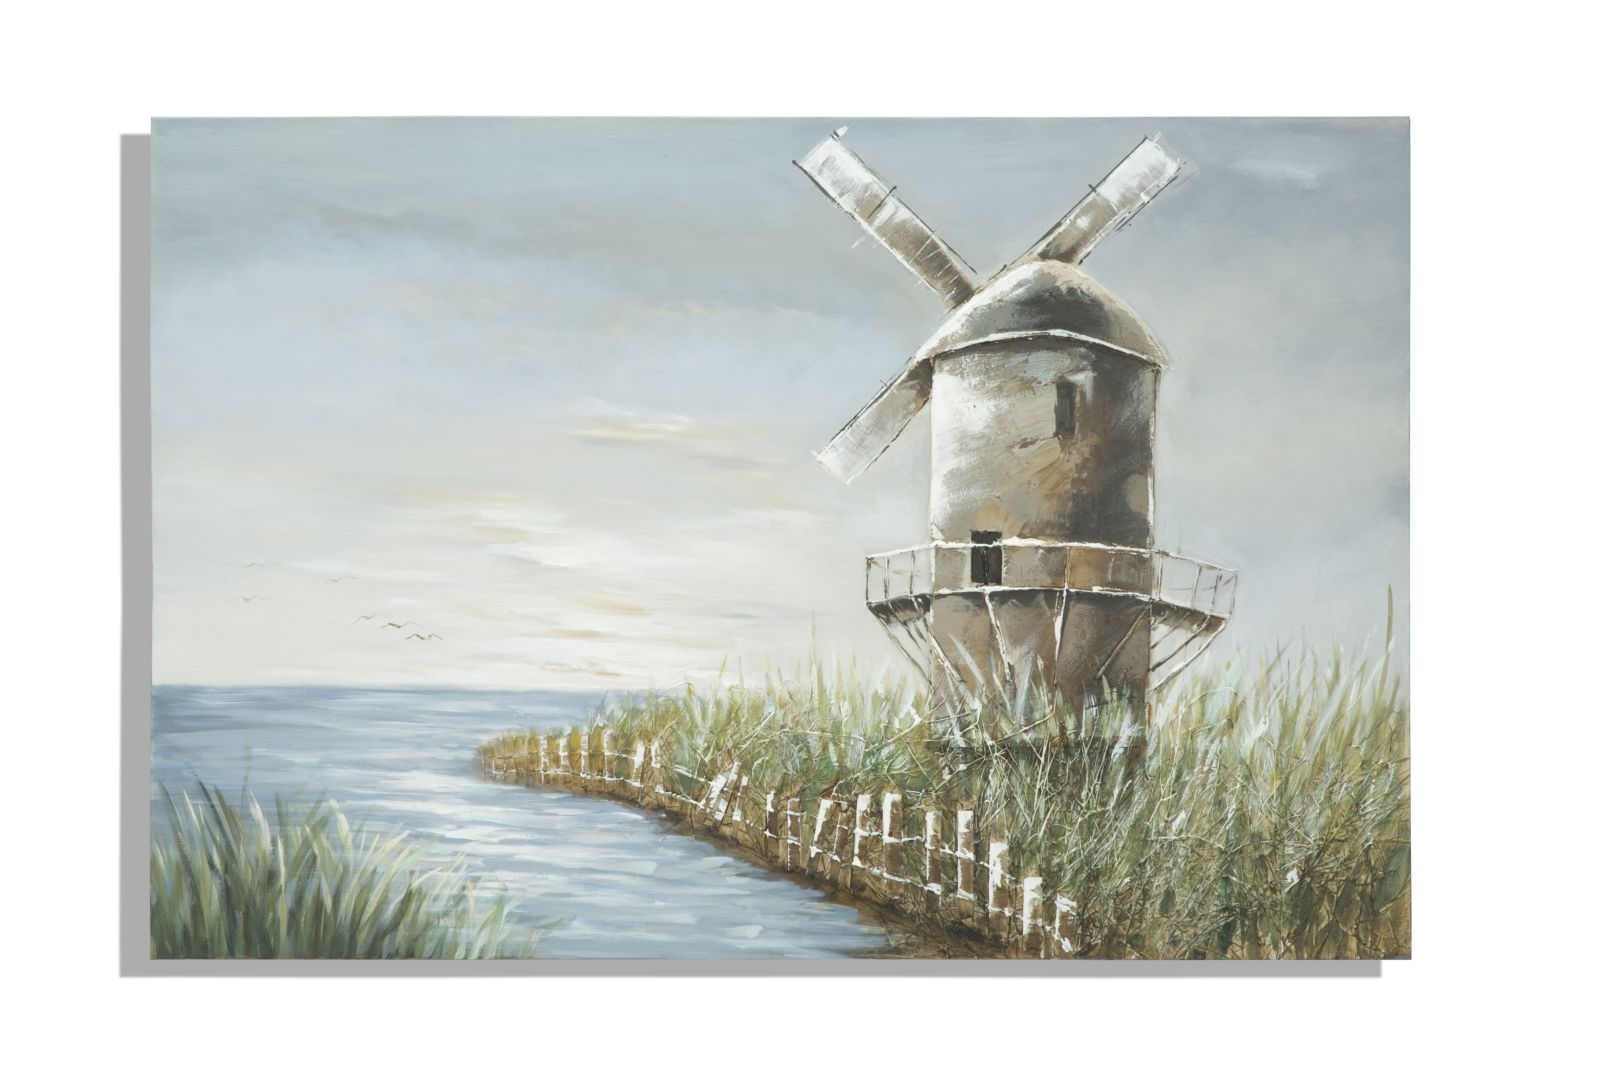 Tablou pictat manual Windmill, 80x120 cm